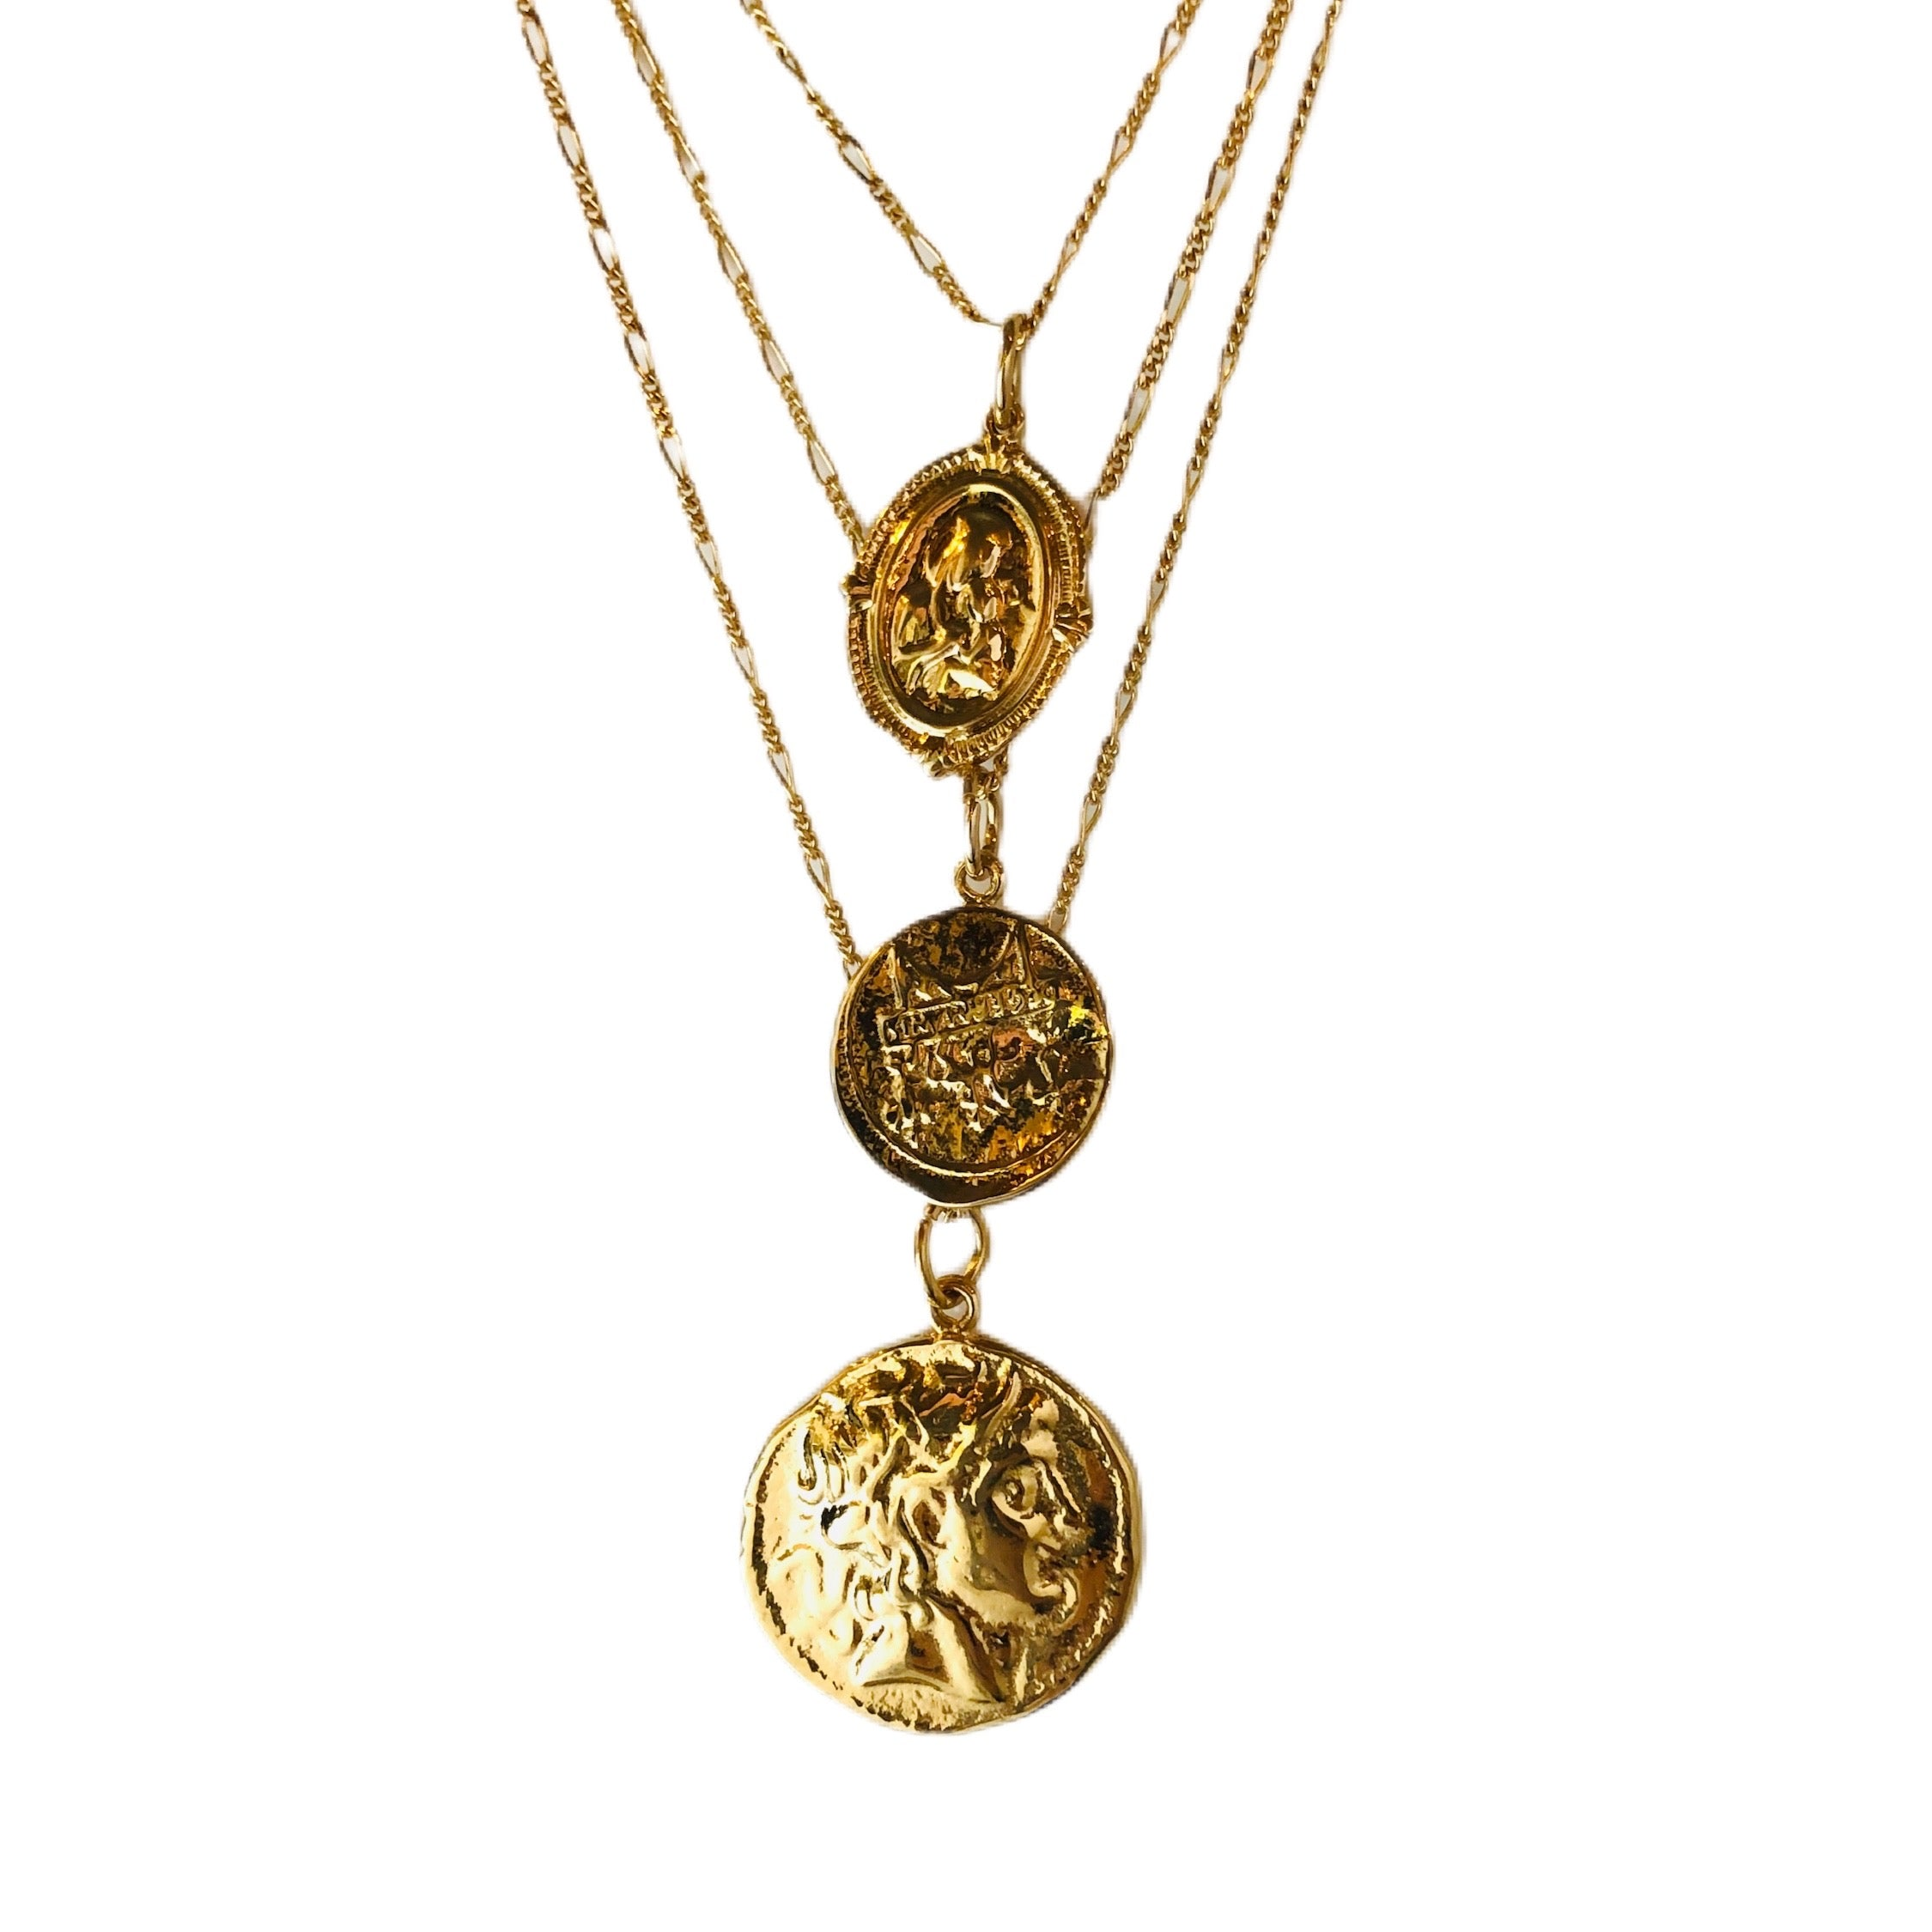 Triple Gold Coin Necklace